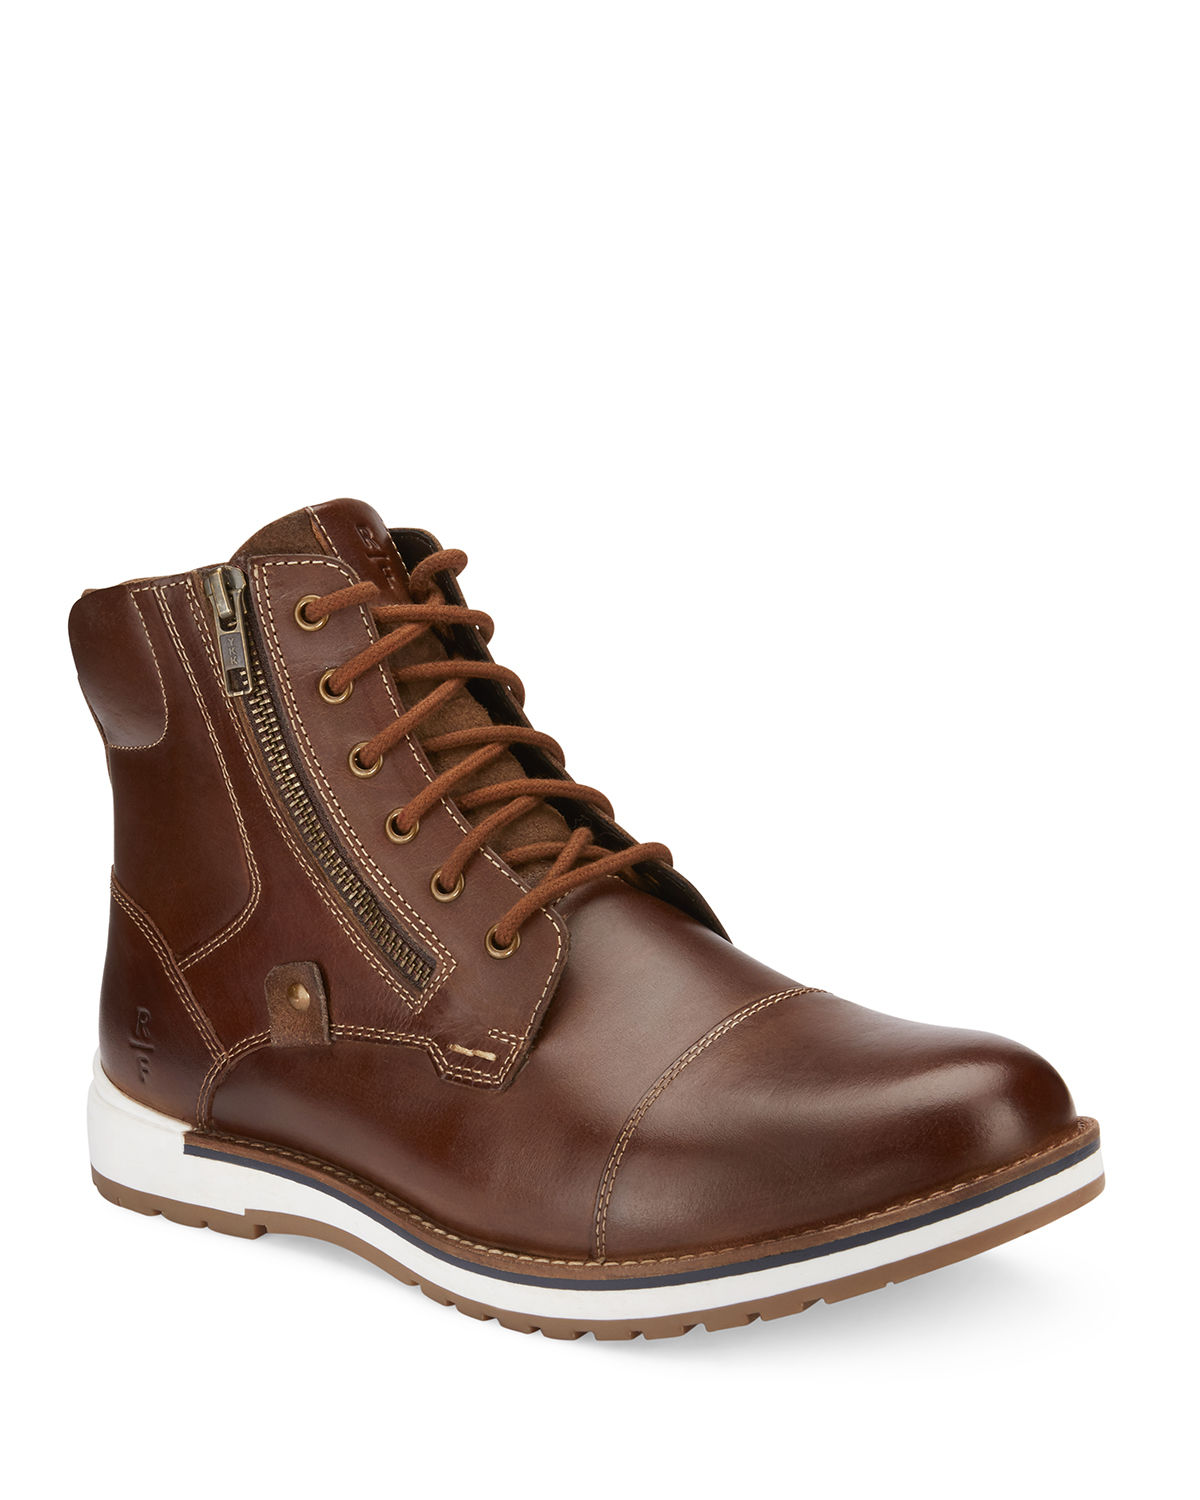 a4abe074f65 Men's Boots on SALE! $150 - $249.99